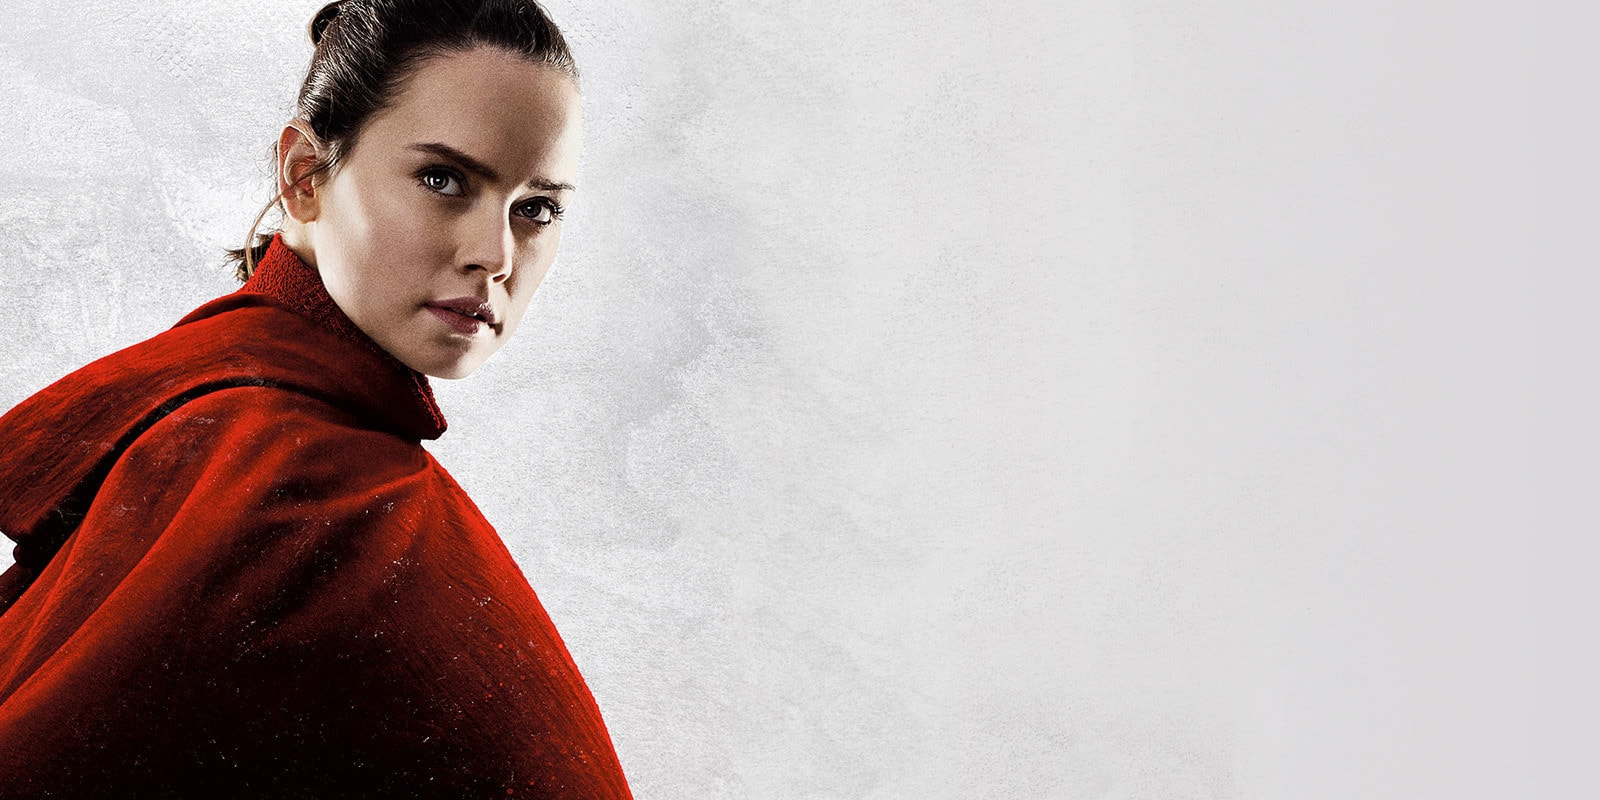 Star Wars: The Last Jedi | Buy tickets from Powster